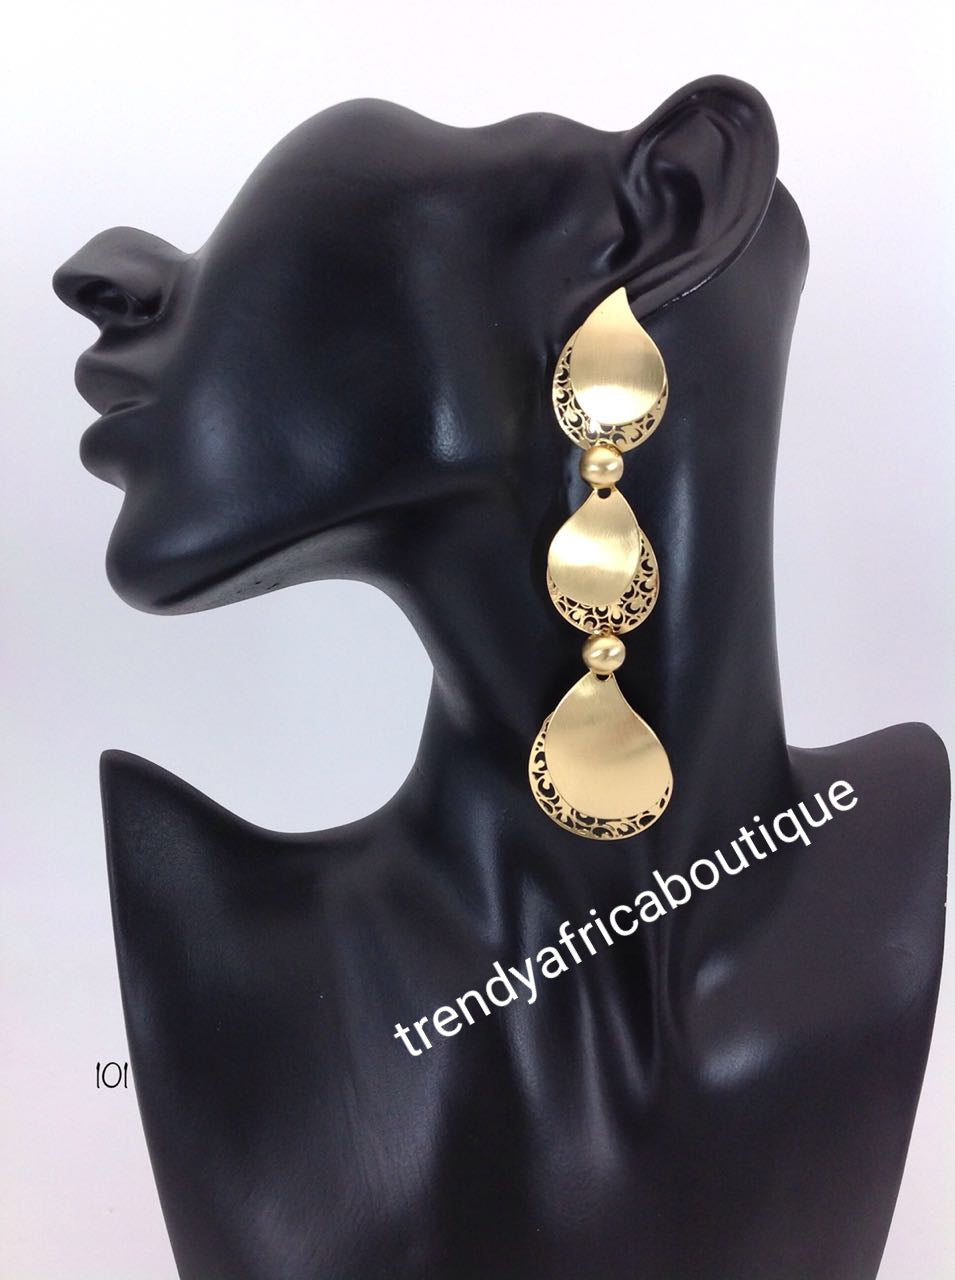 Latest drop-earrings in Gold electrroplating. Top quality made hypoallergenic. Long lasting. Light weight earrings